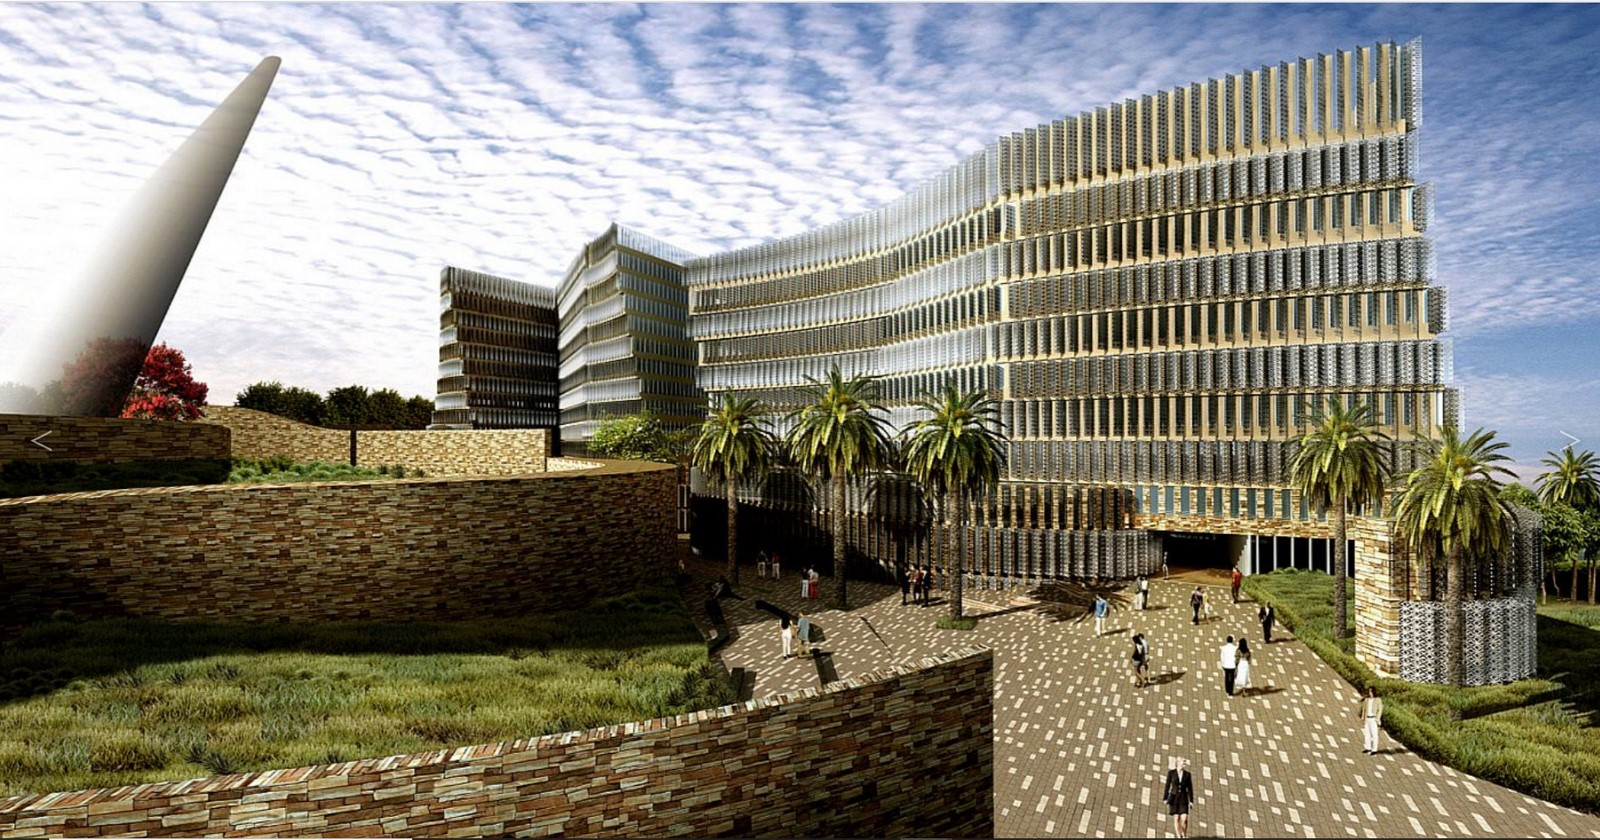 Hill county SEZ office complex in Hyderabad by SOM architects - Sheet2